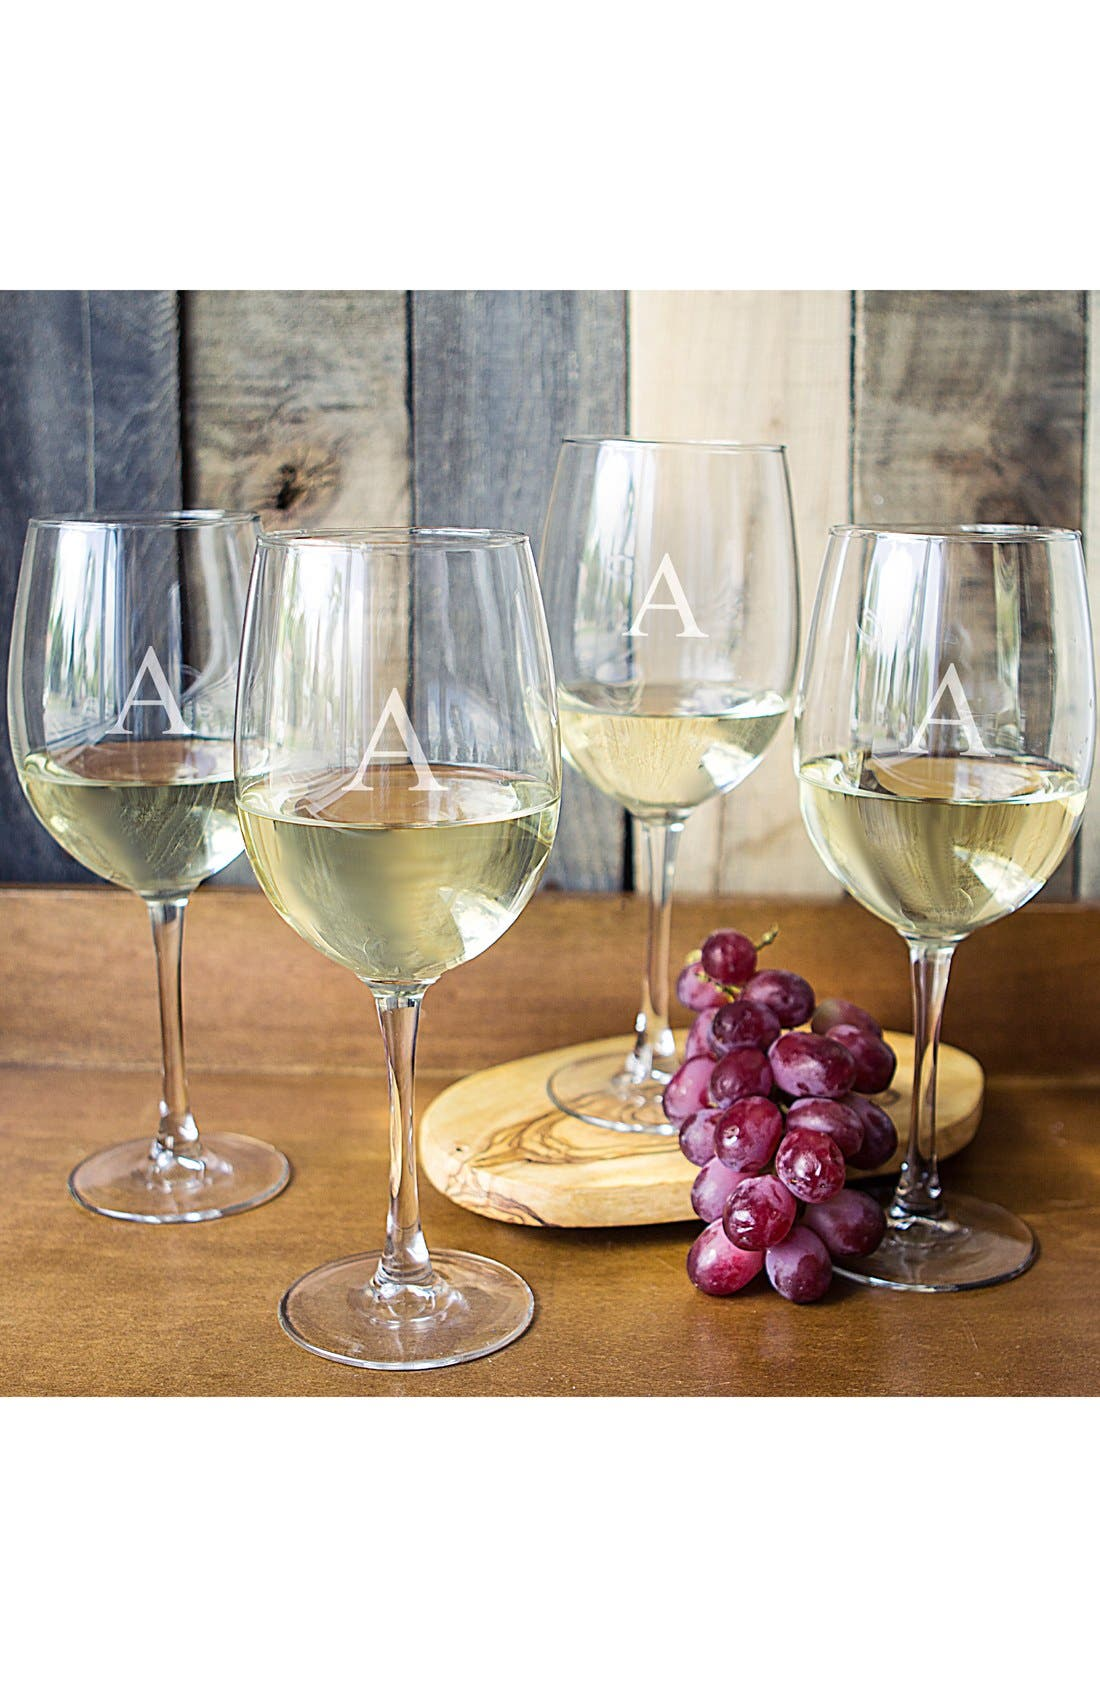 Main Image - Cathy's Concepts Set of 4 Personalized White Wine Glasses